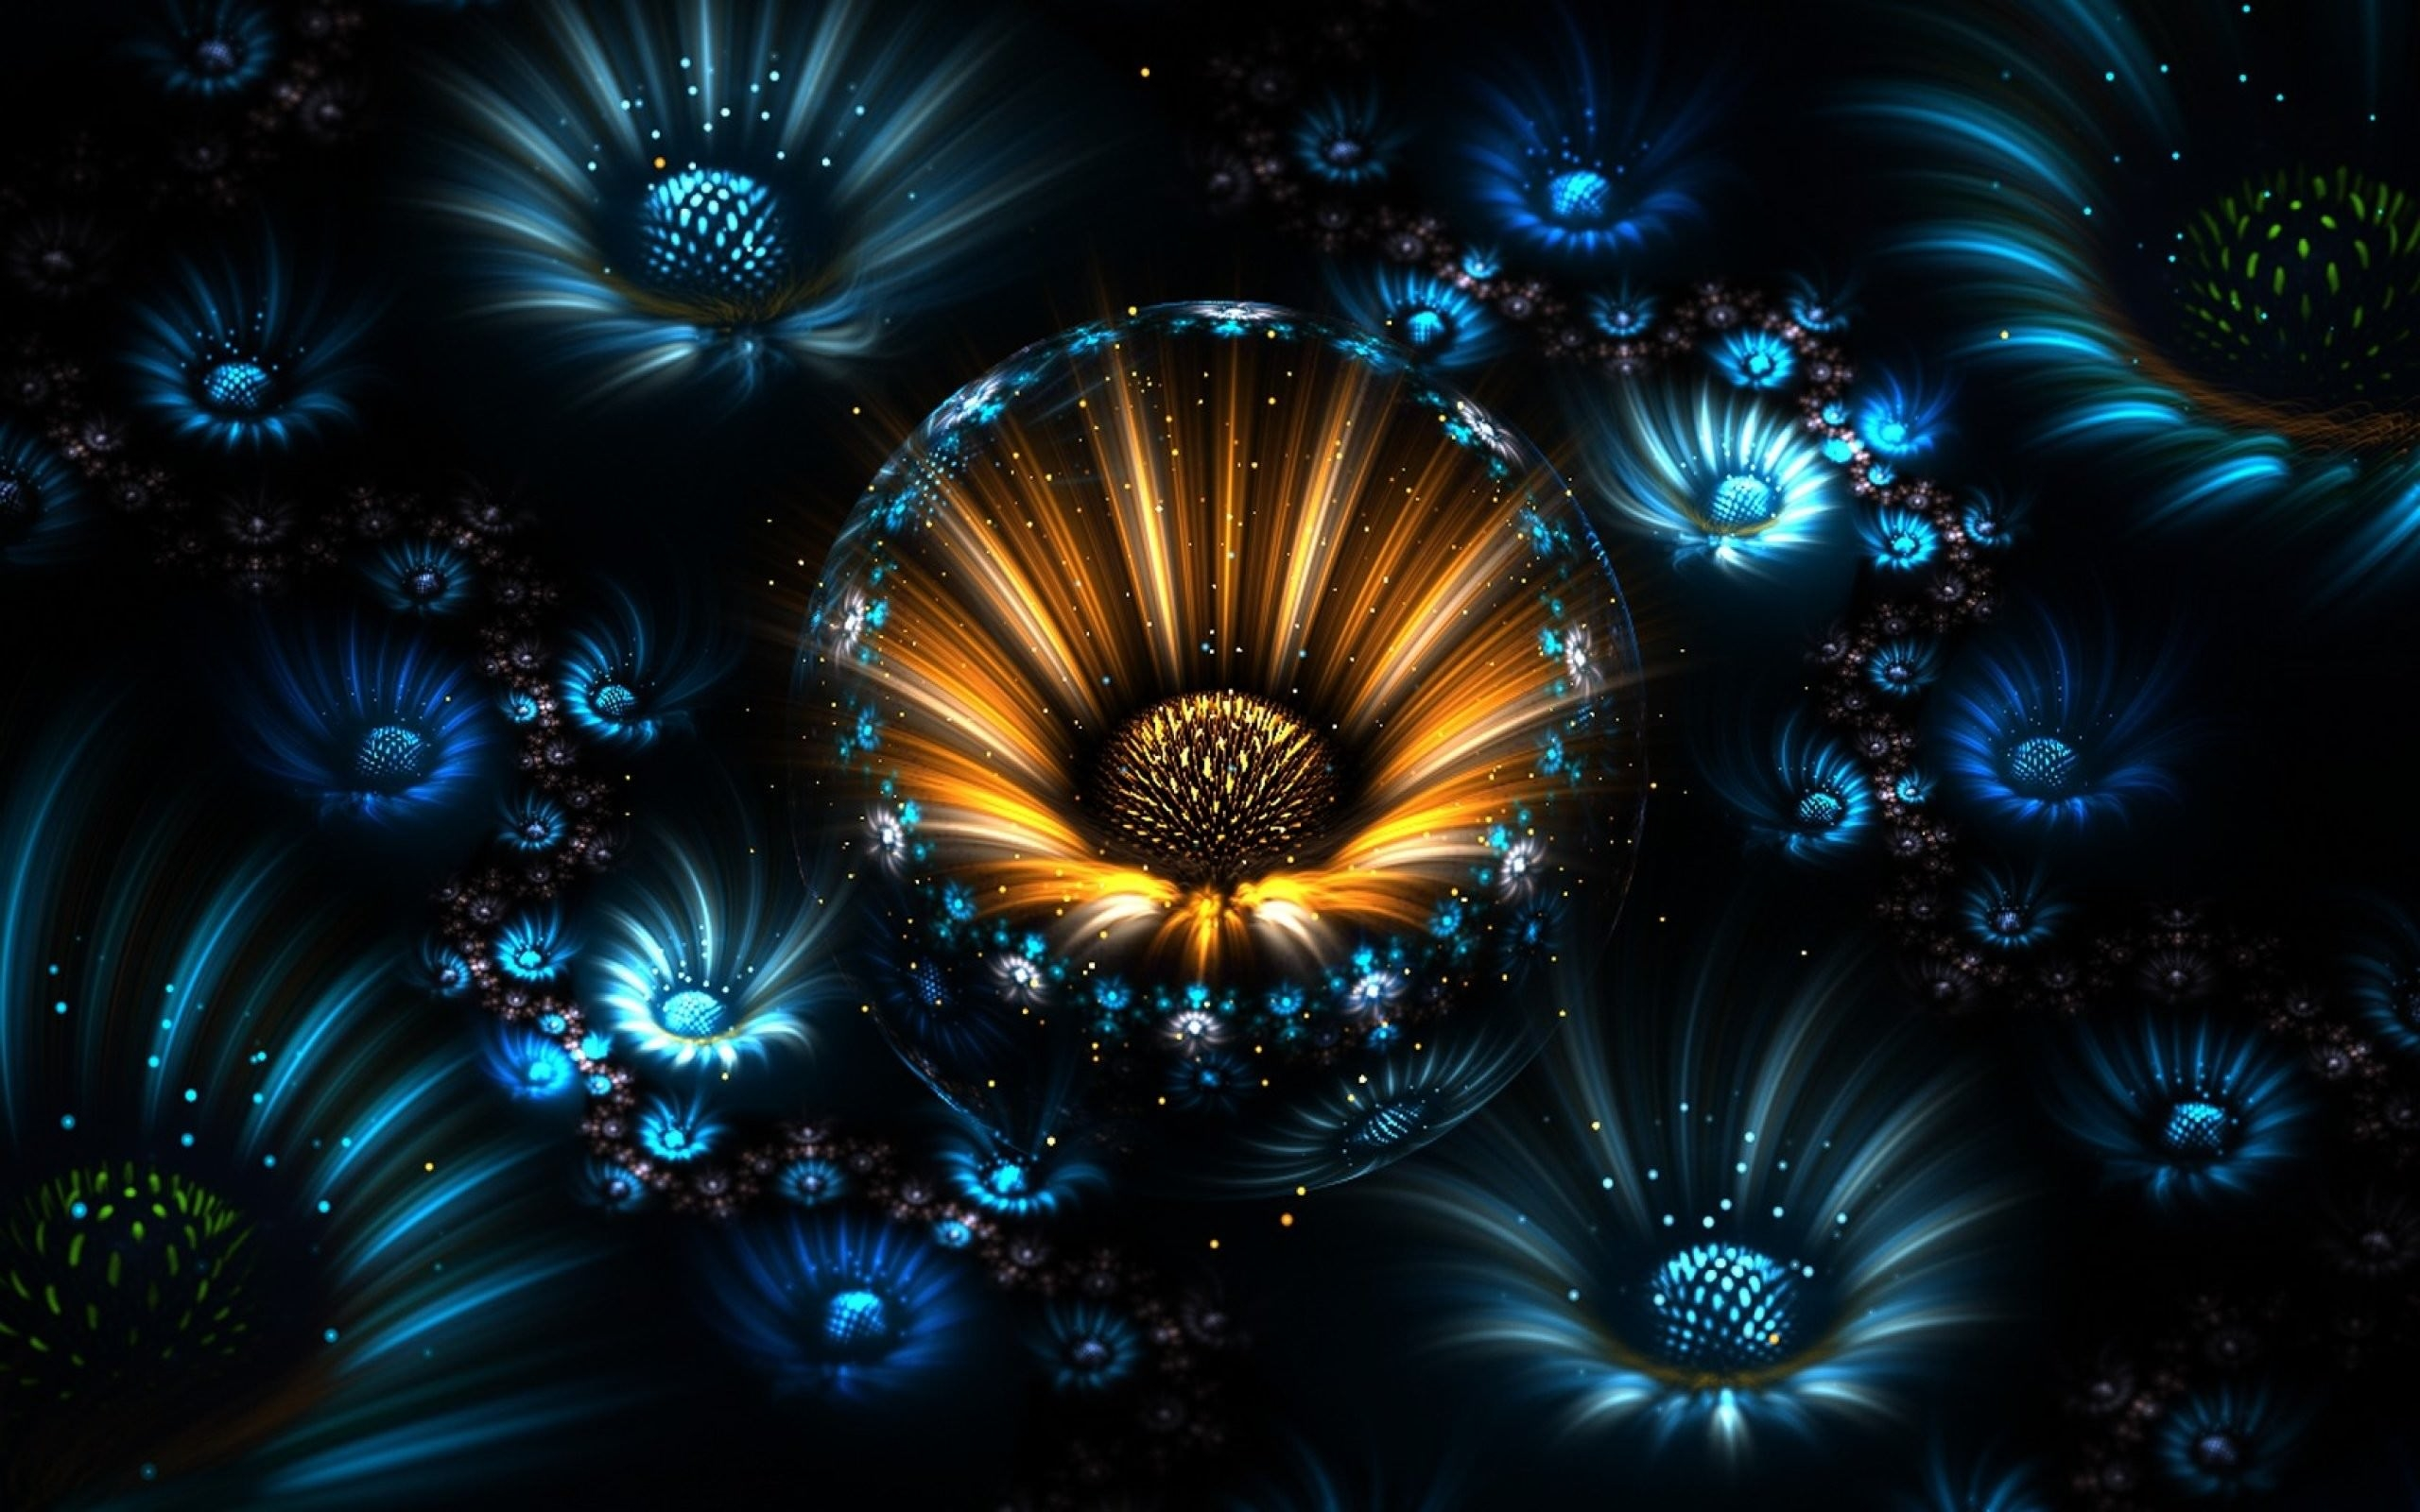 Fractal Flowers Abstract Wallpaper